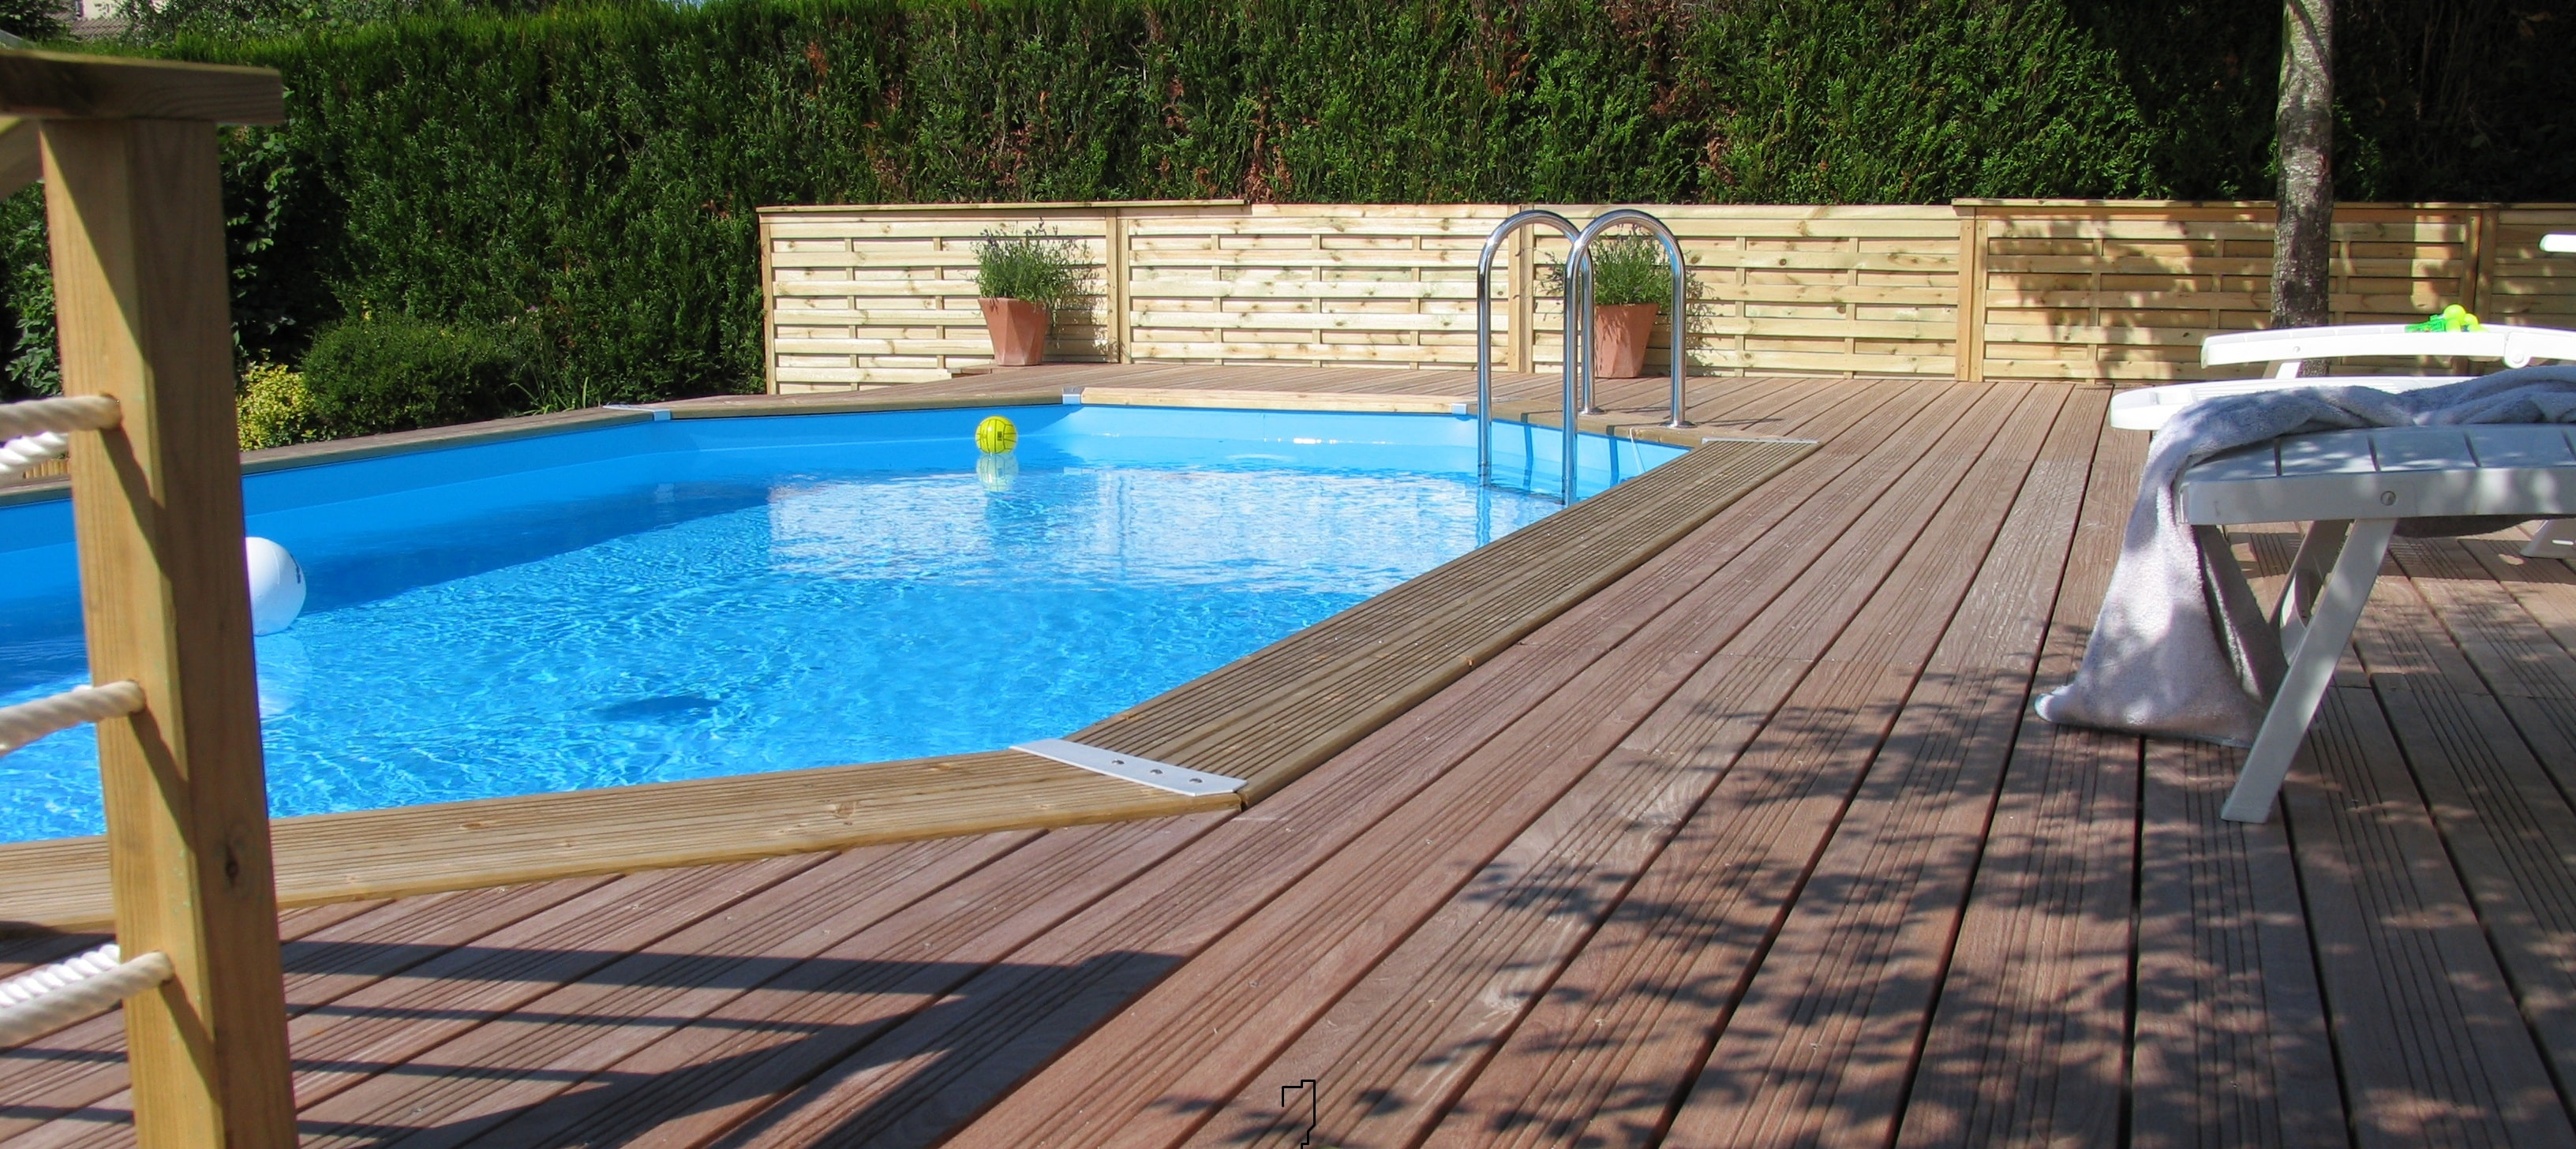 Comment enterrer une piscine bois for Piscine bois a enterrer